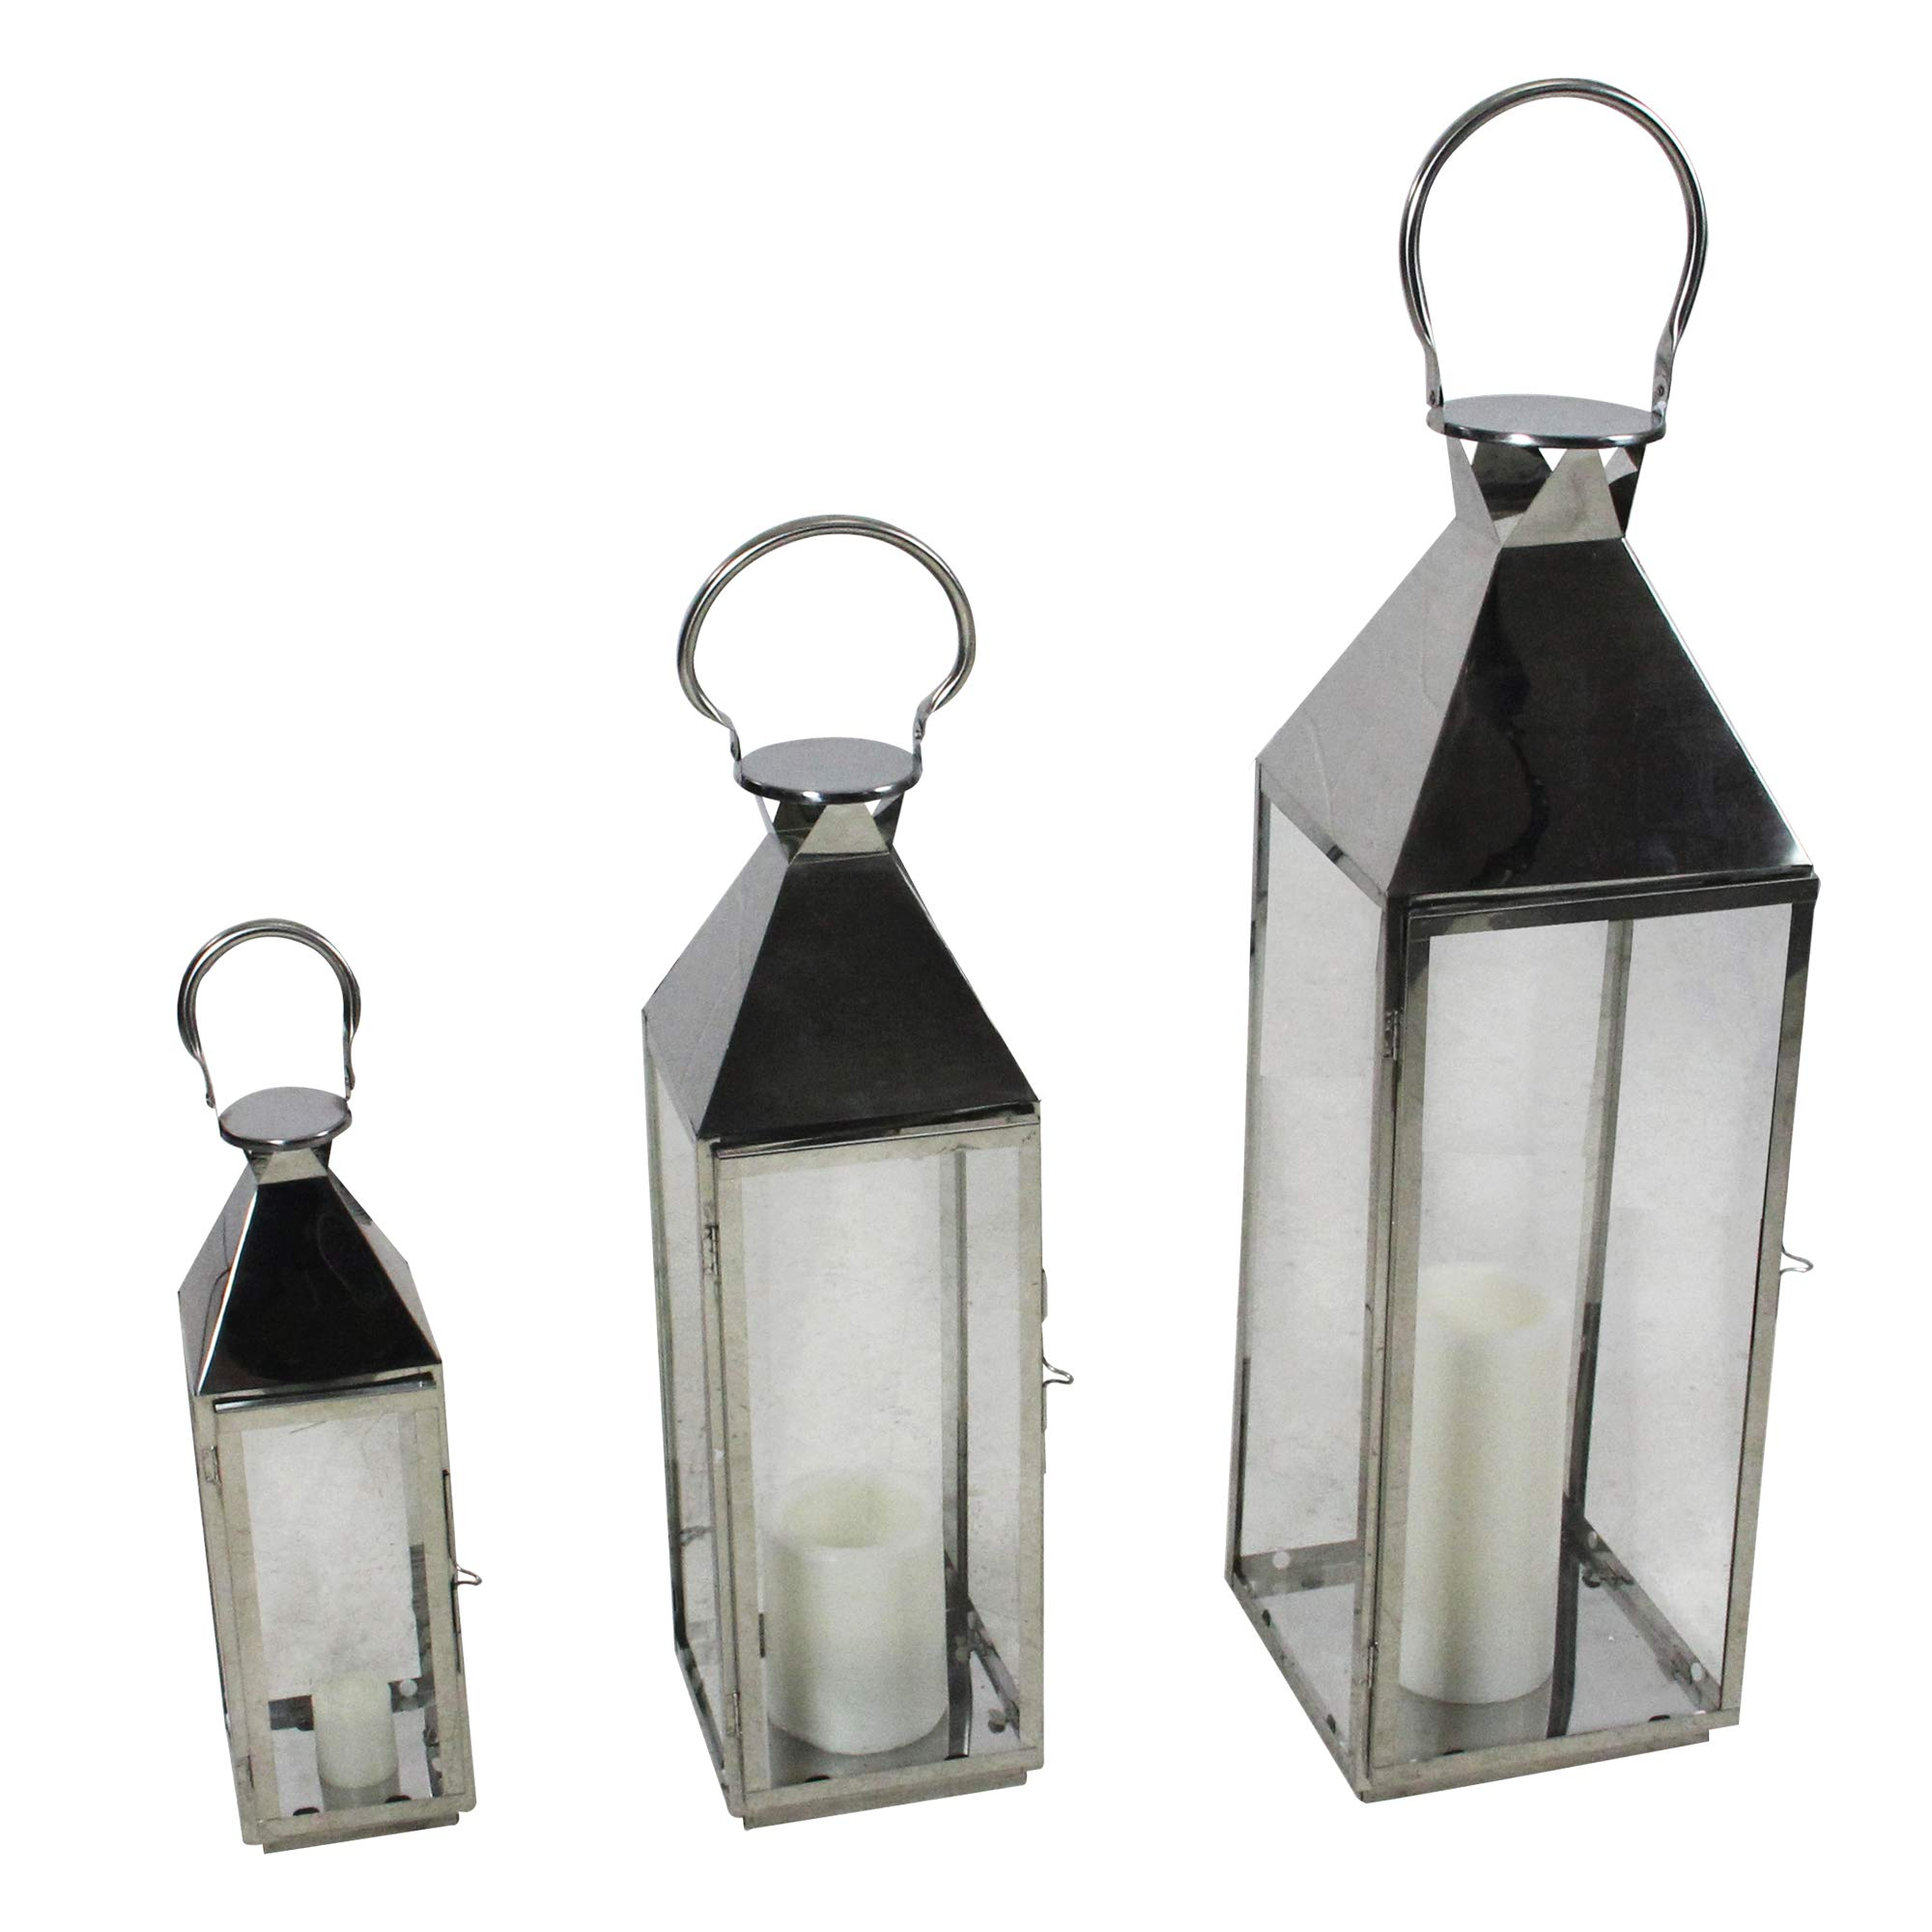 Melrose Set of 3 Stainless Steel and Glass Pillar Candle Holder Lanterns 35''